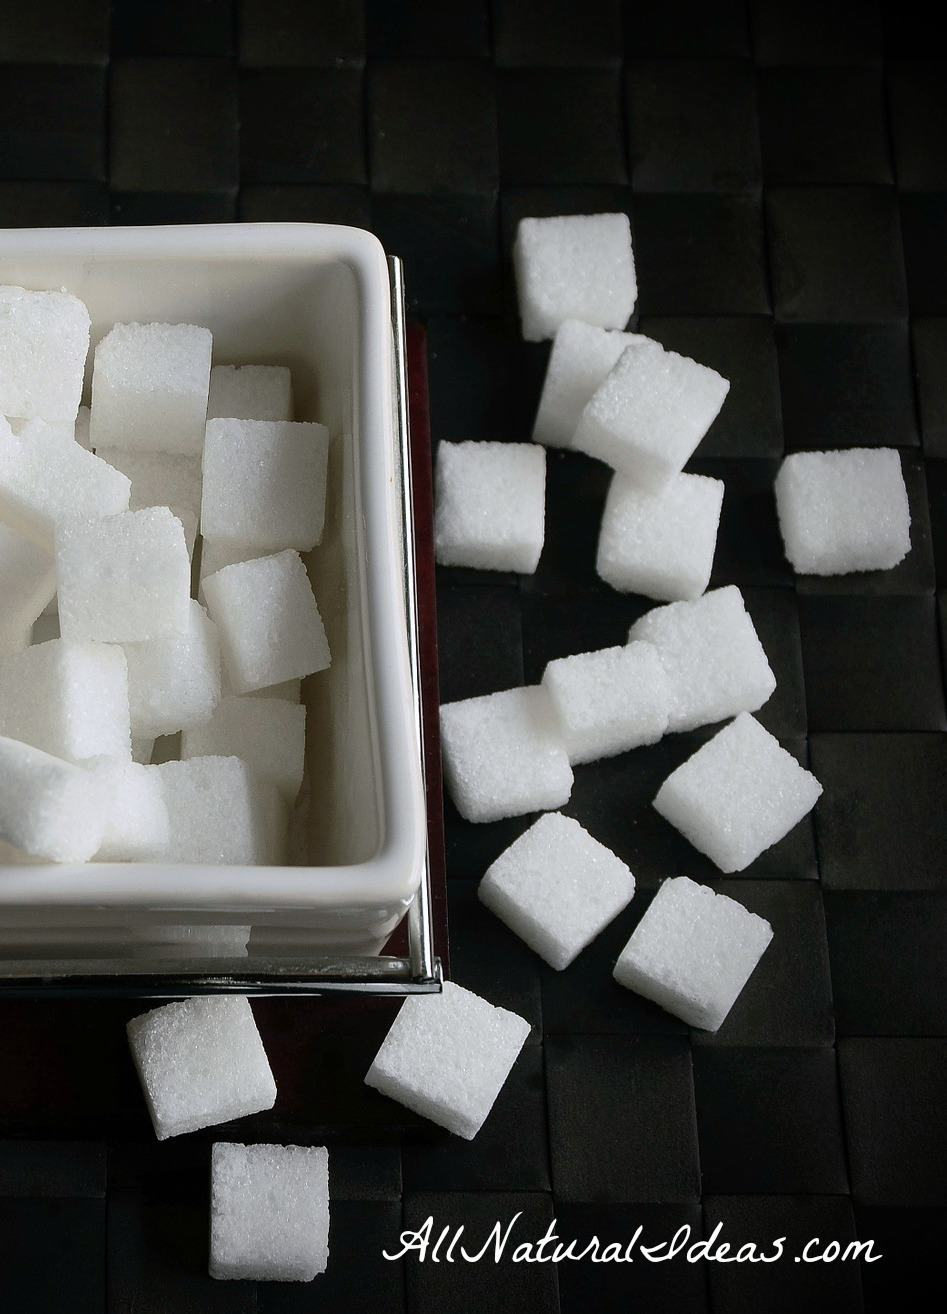 Quit sugar addiction for good and detox